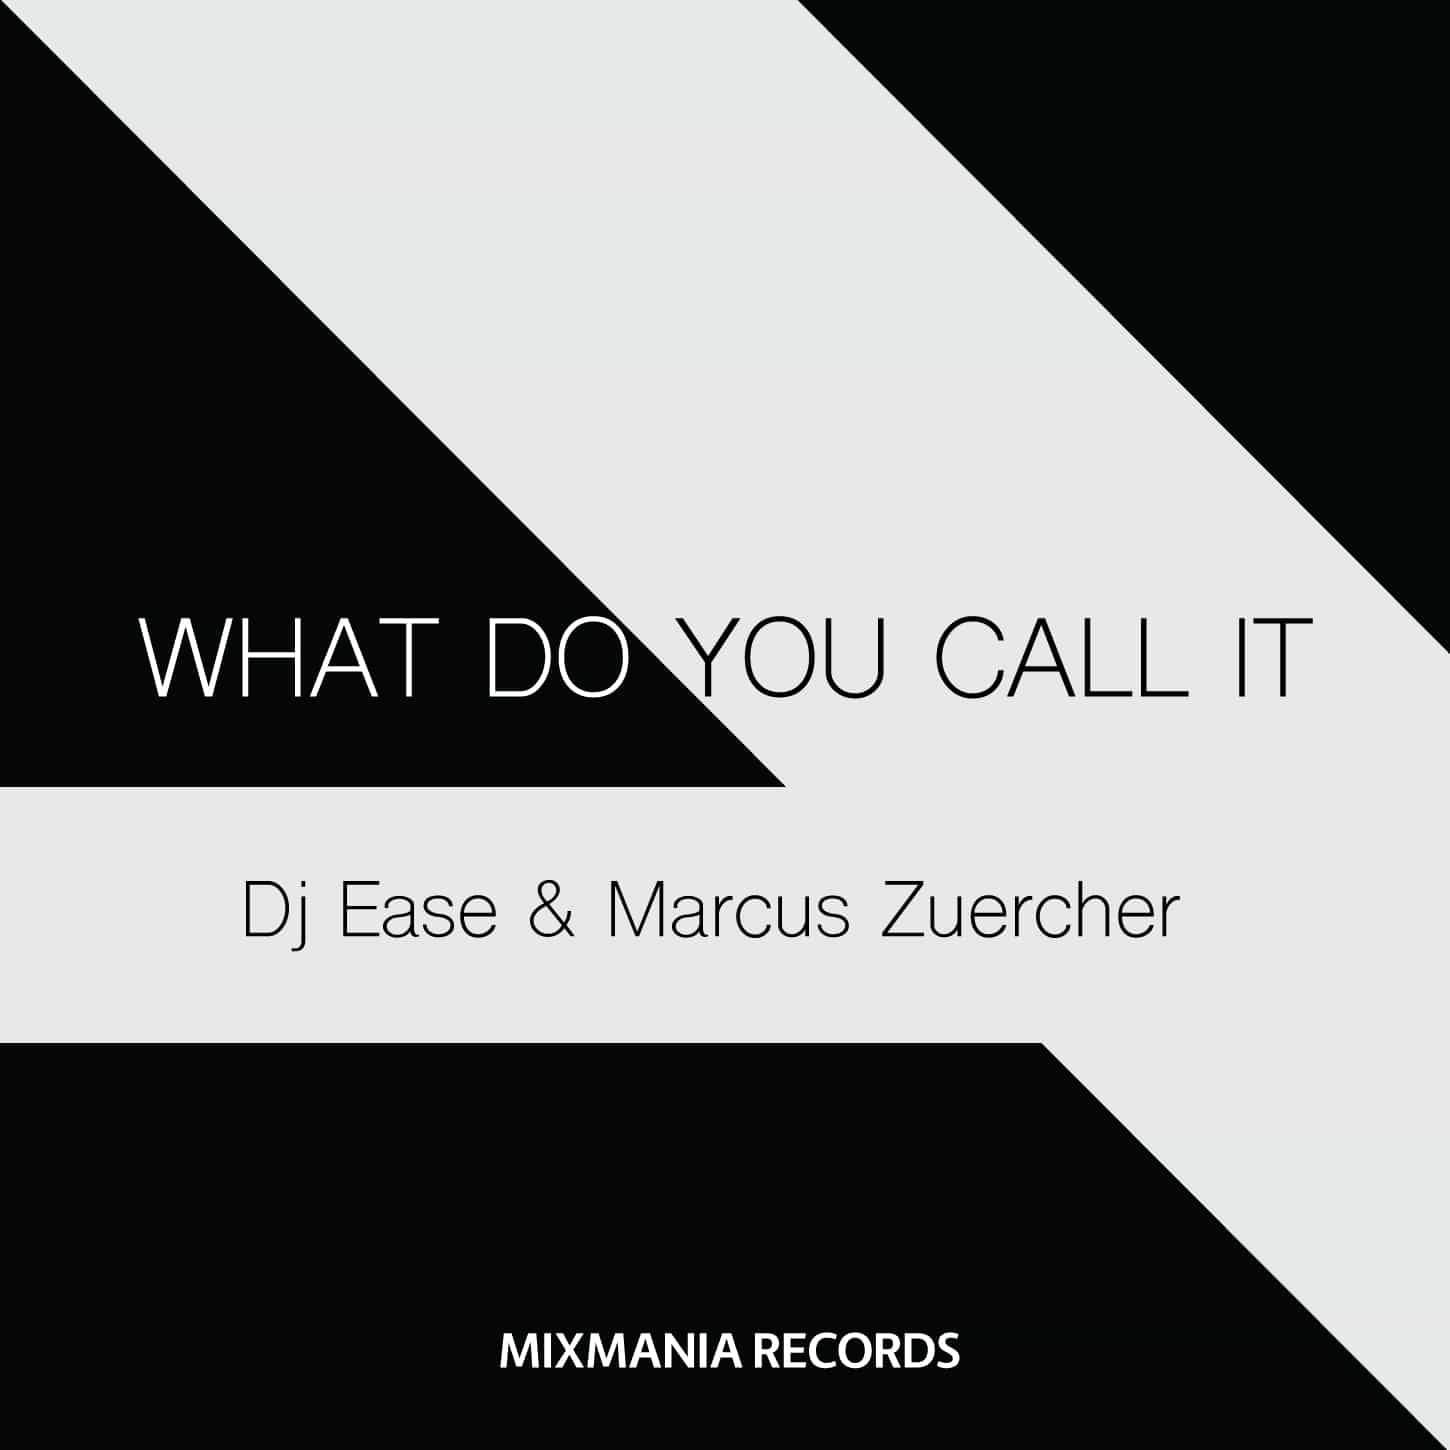 What Do You Call It (Original Mix) By Dj Ease And Marcus Zuercher Art Work